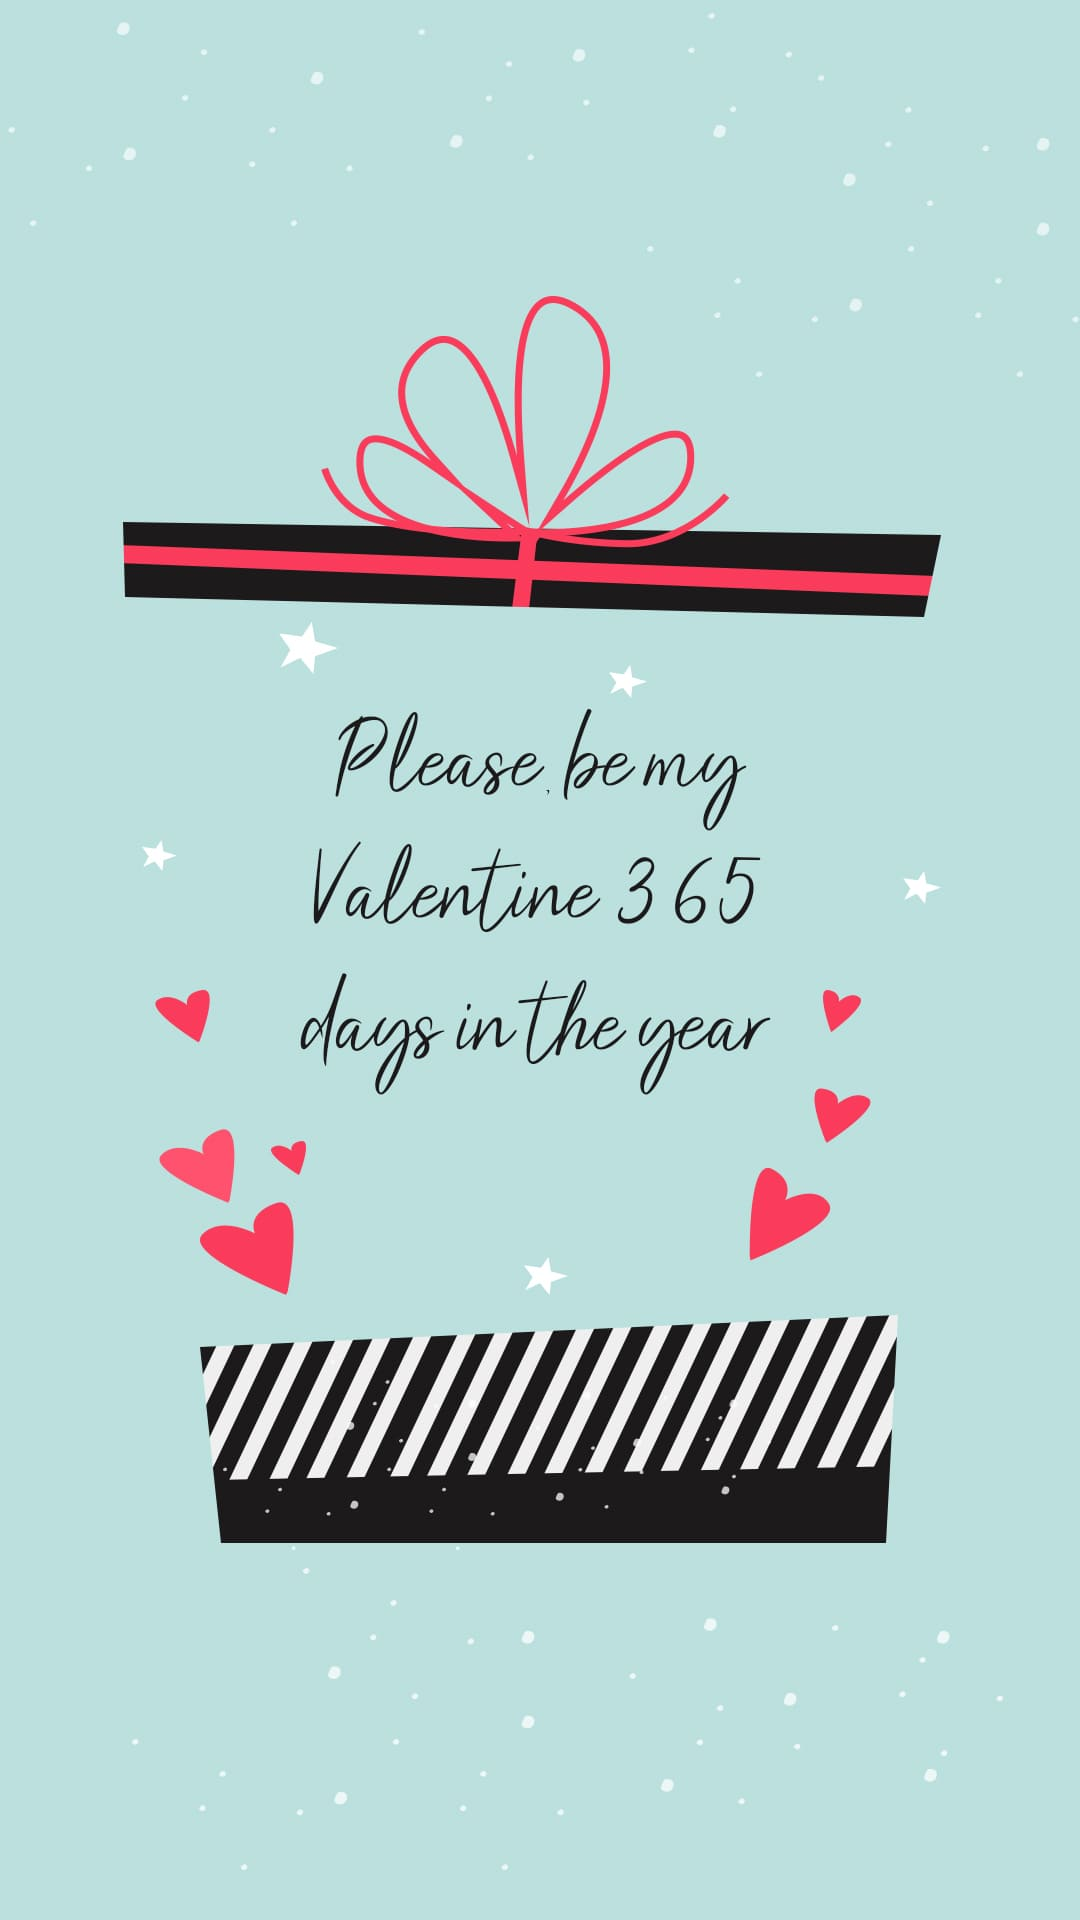 40+ Awesome Valentine's Day Quotes 2021 😍 - valentines day quotes for him 9